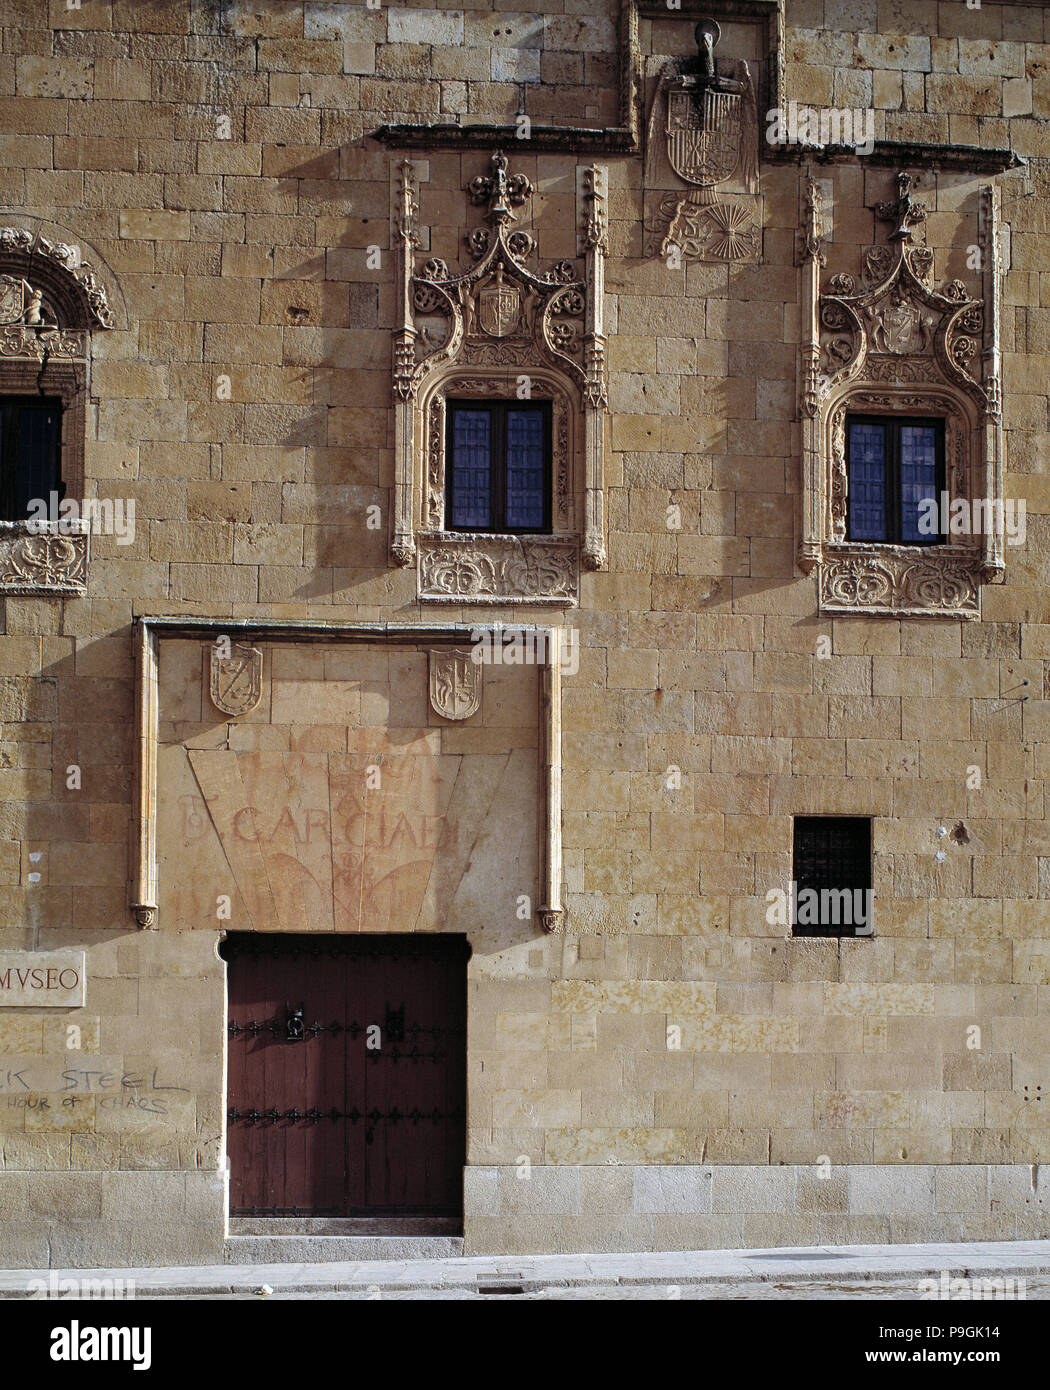 Detail of the façade of the Palace of Dr. Abarca Maldonado, now houses the museum of the city of Salamanca. - Stock Image